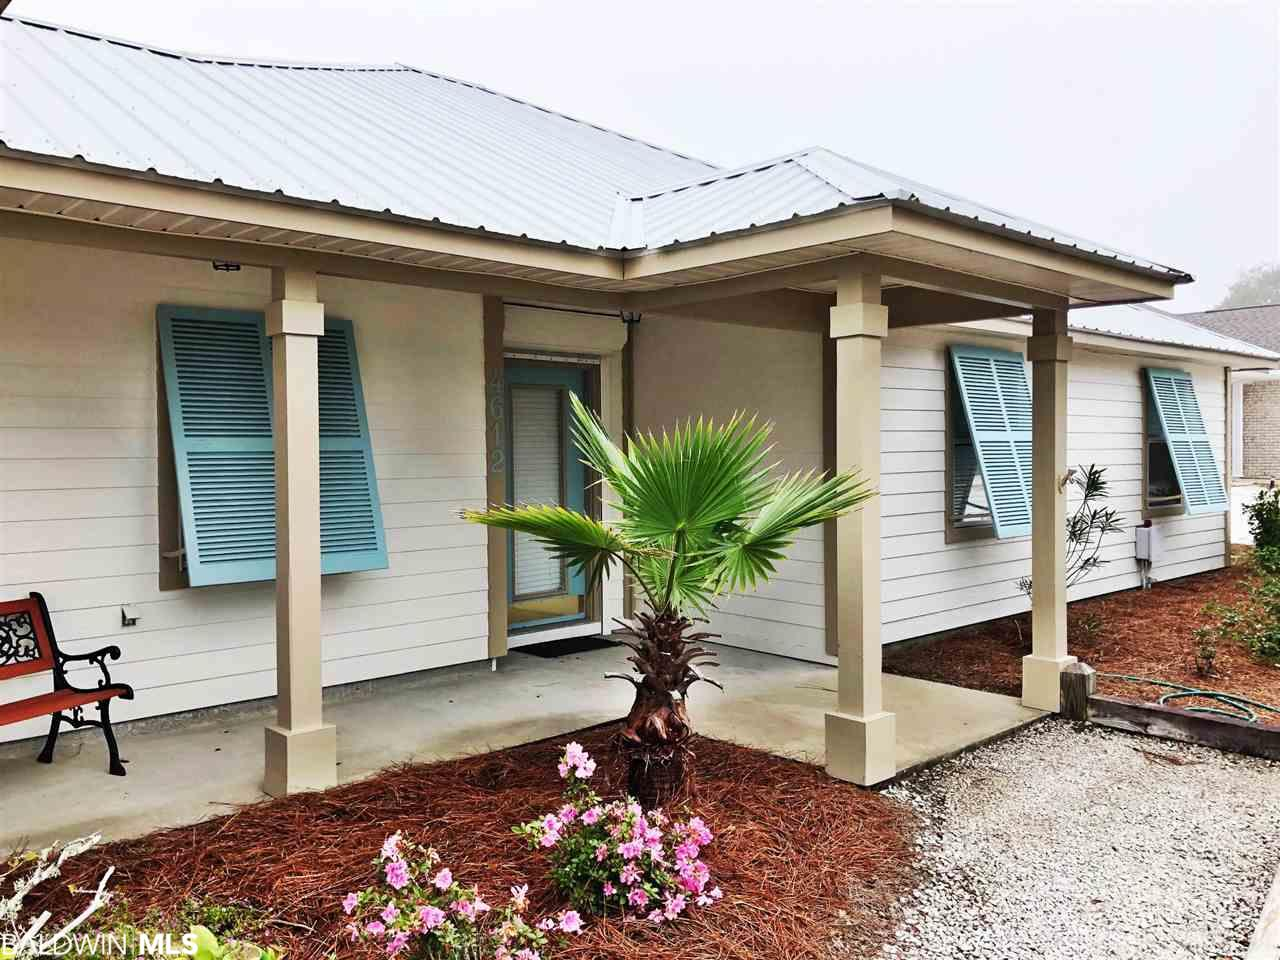 Very cute clean house on Ono Island! New paint inside and out including garage floor, new vinyl floors in bedrooms, cabinets redone, popcorn ceiling removed, some new lighting. Must see!